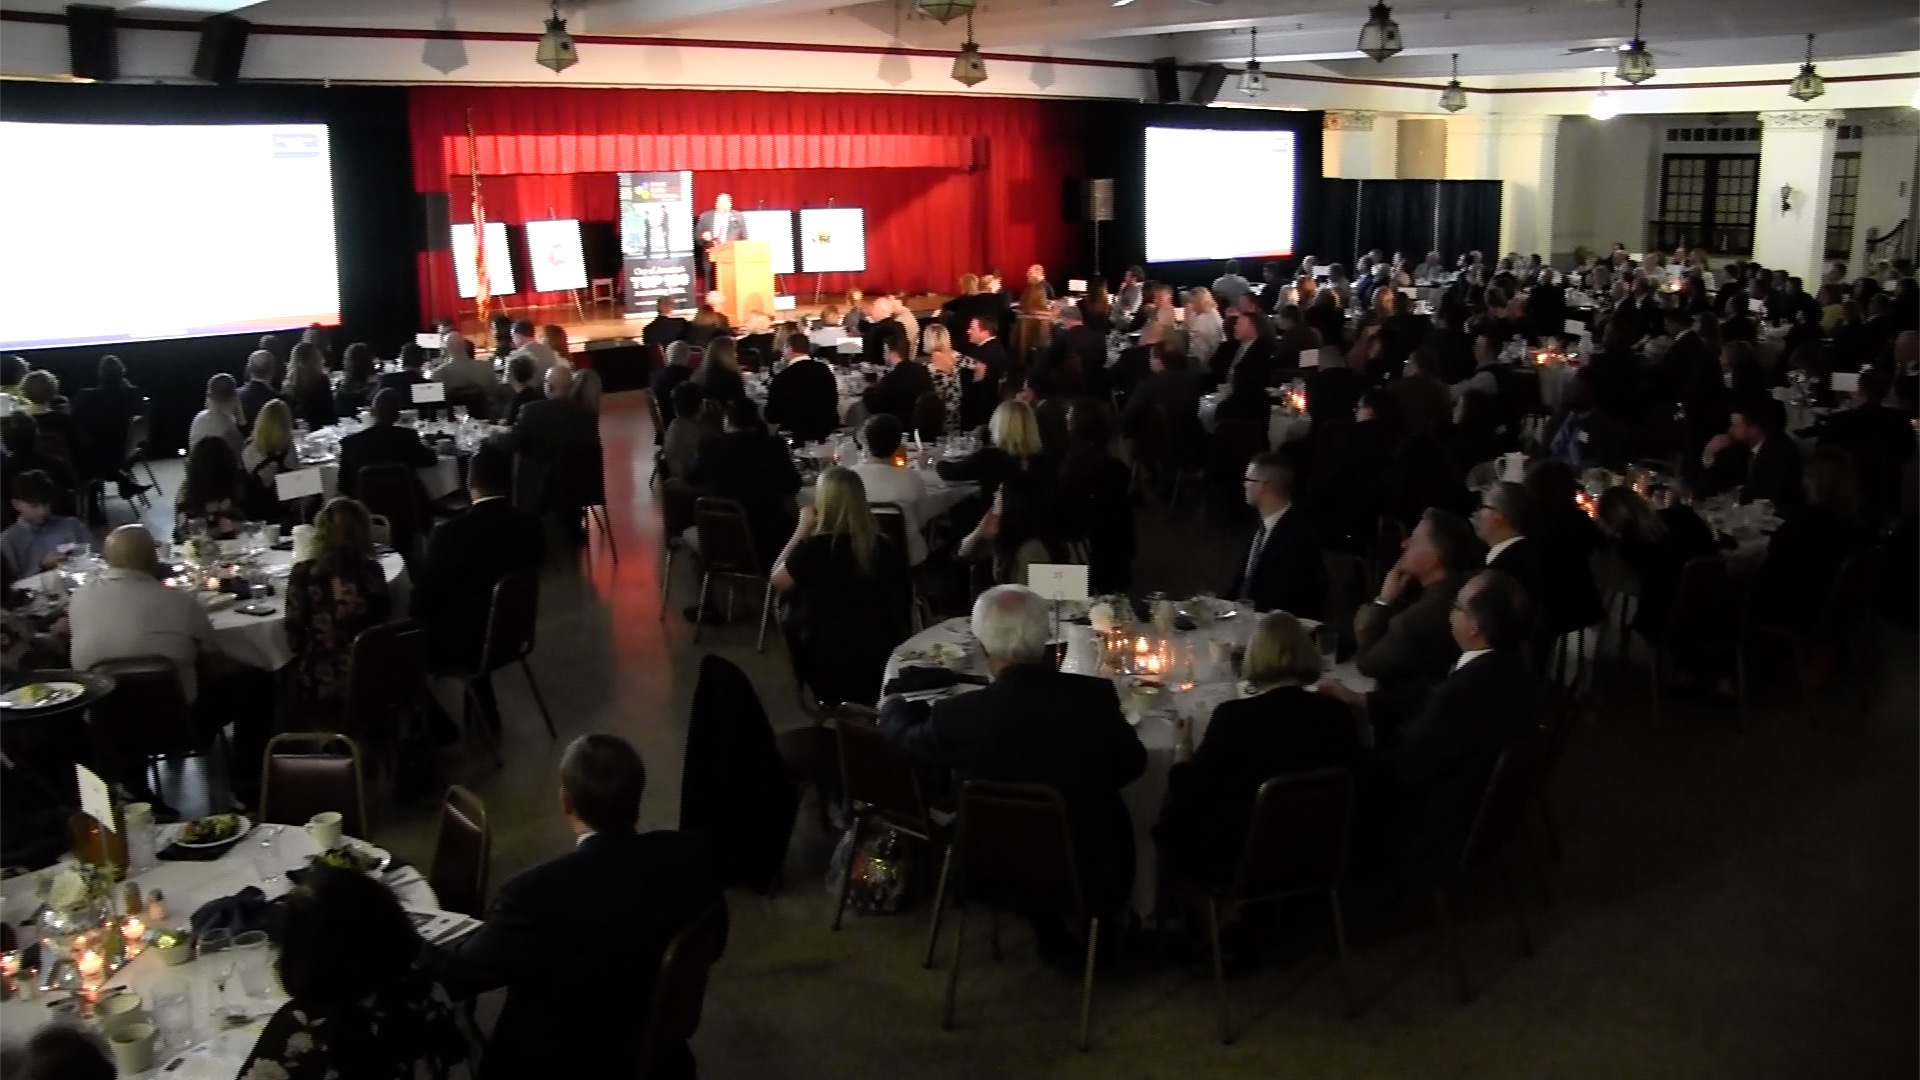 The Lawrence County Regional Chamber of Commerce 116th Annual Dinner